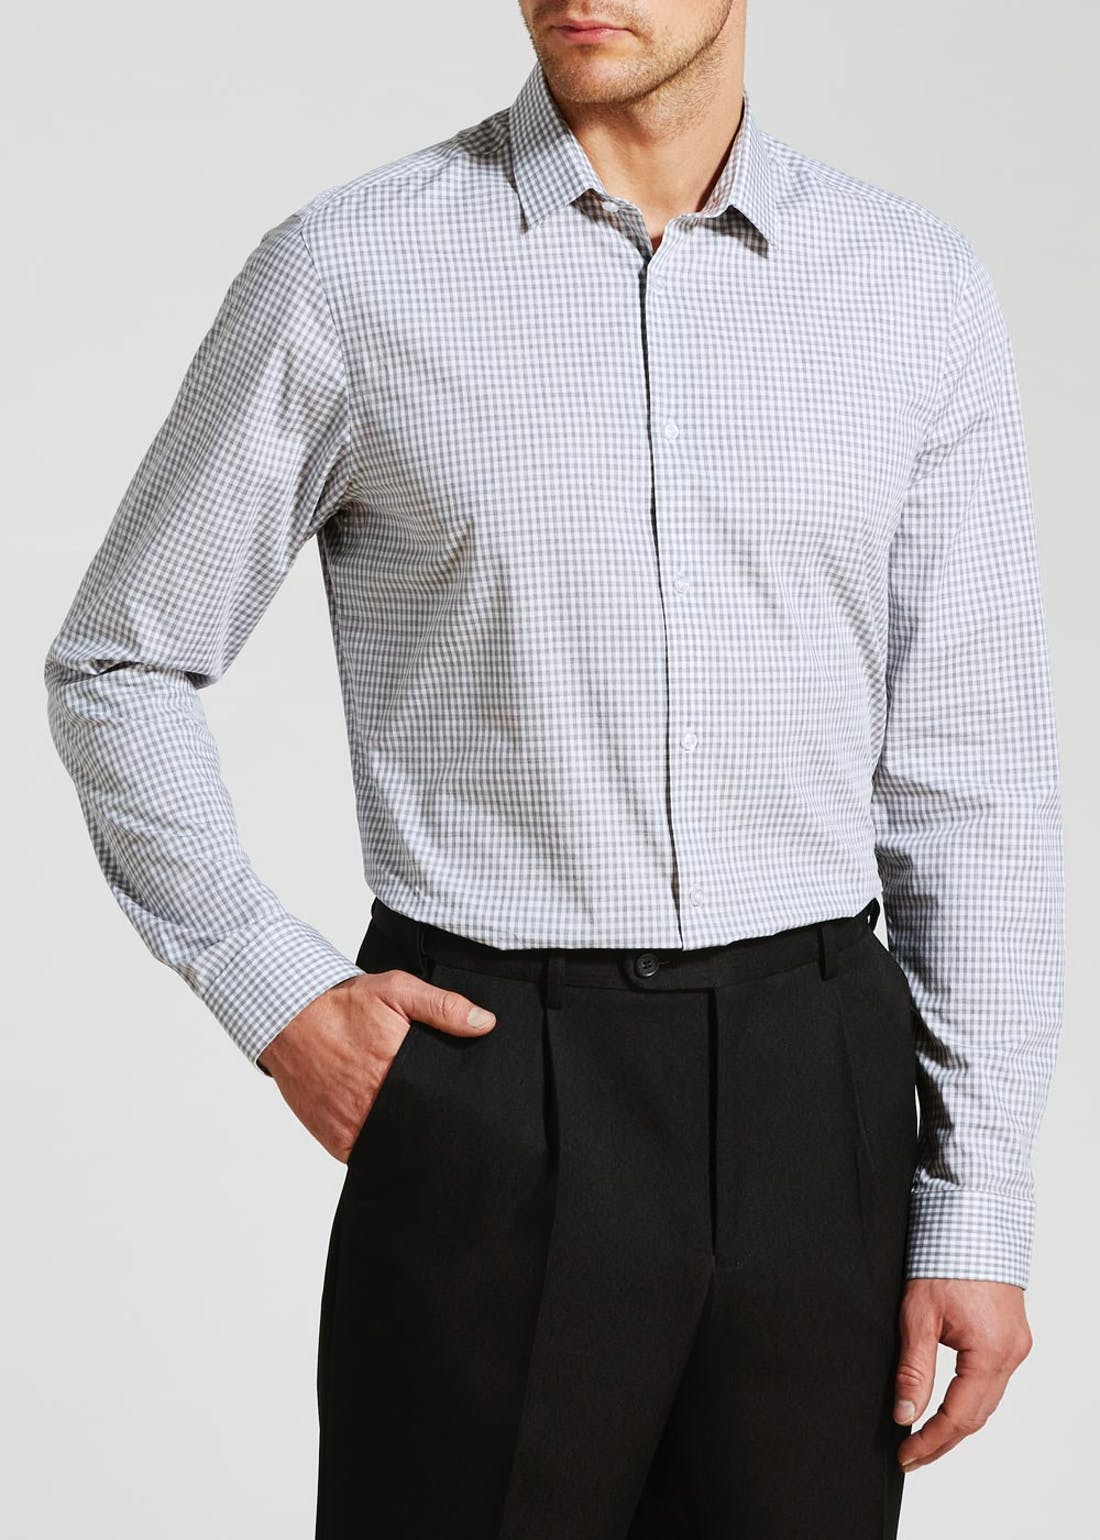 100% Cotton Slim Fit Gingham Shirt